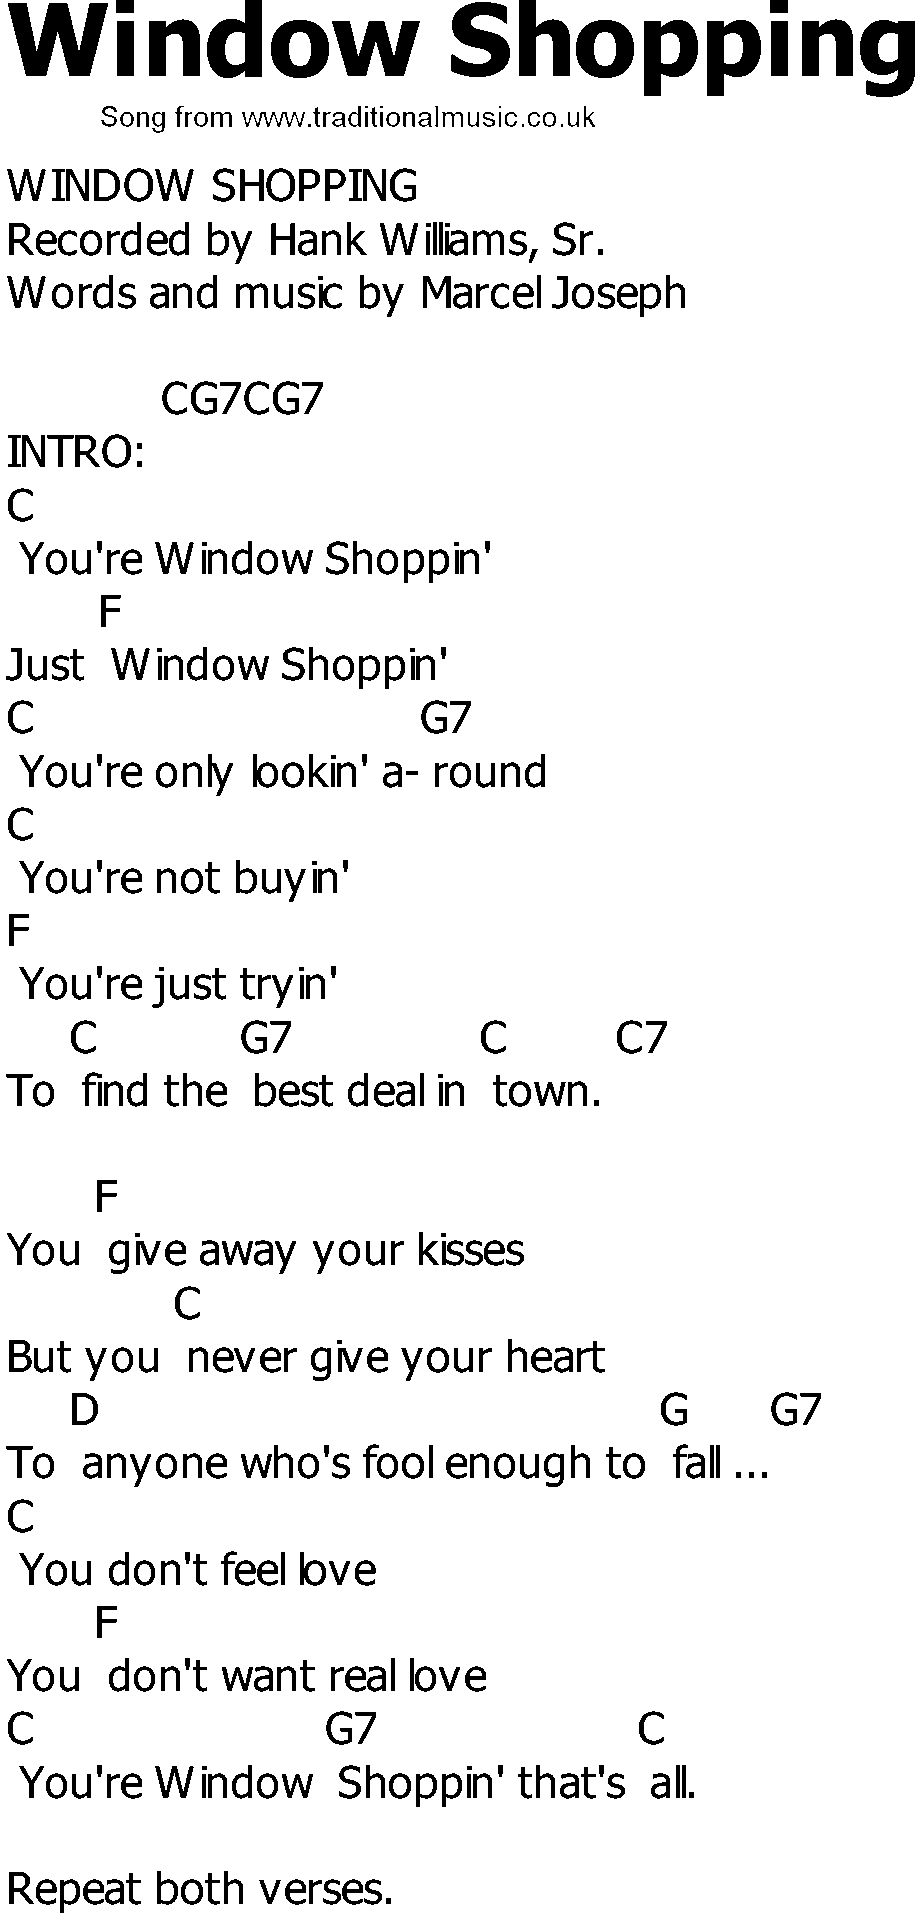 Old Country song lyrics with chords - Window Shopping